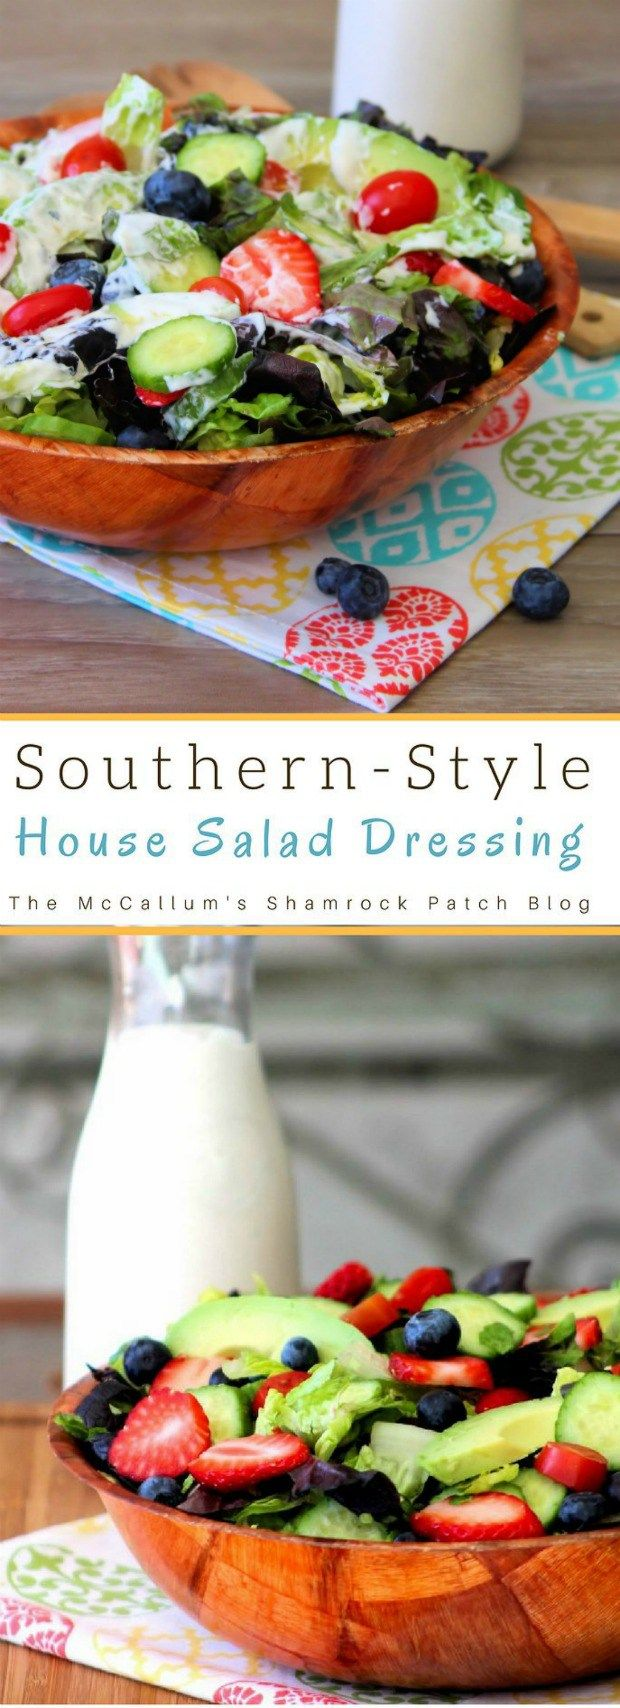 Southern Buttermilk Salad Dressing is a deliciously easy, flavorful, homemade, Southern-Style salad dressing that our family has made for years to enjoy over our favorite salad greens and fixings. Made with buttermilk, creamy mayonnaise, Dijon mustard, organic apple cider, and fresh herbs, Southern Buttermilk Salad Dressing brings a tempting flavor burst to any salad